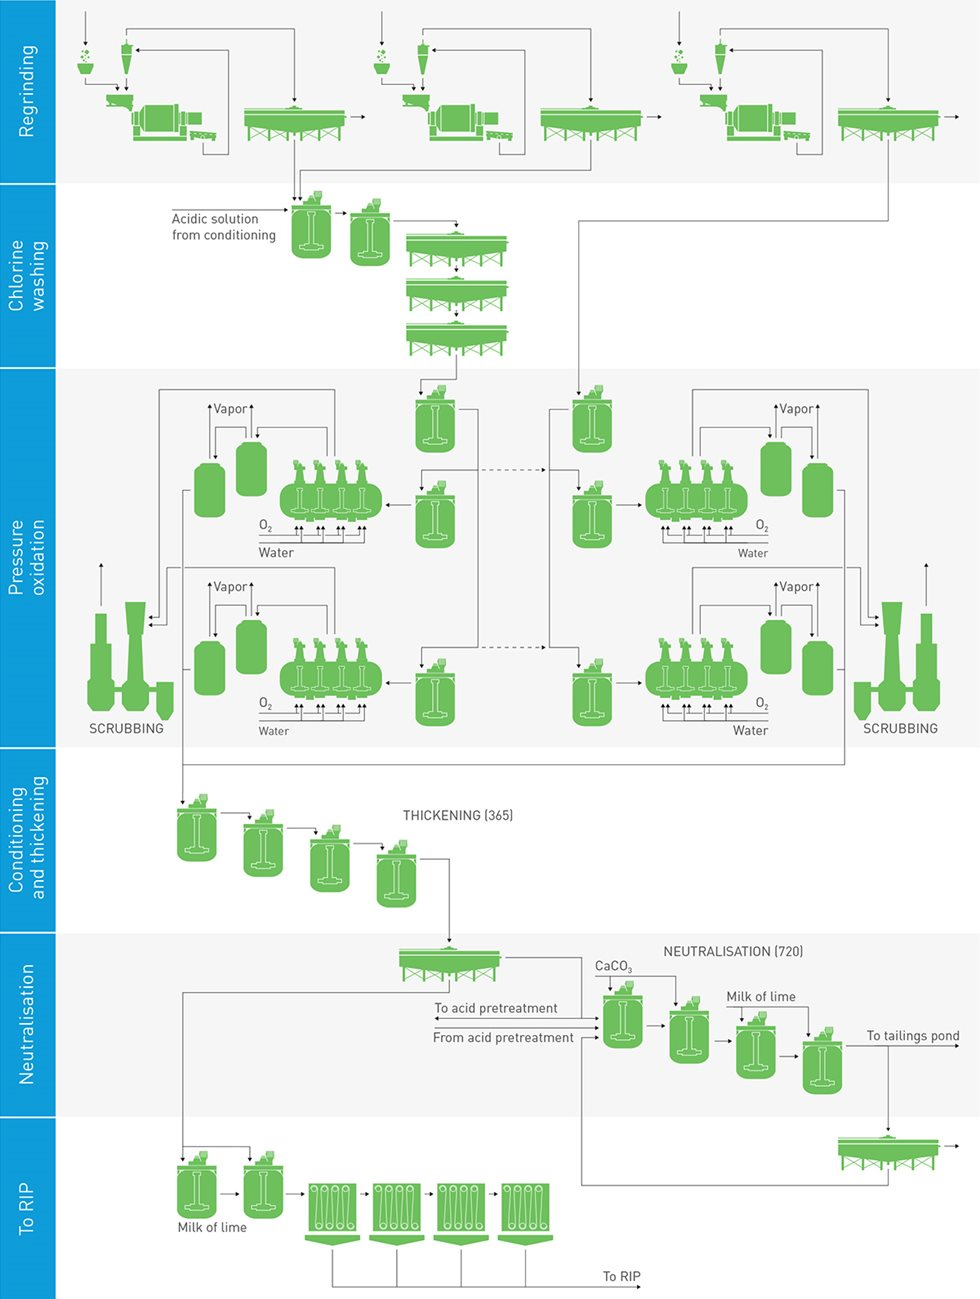 The POX plant flowsheet